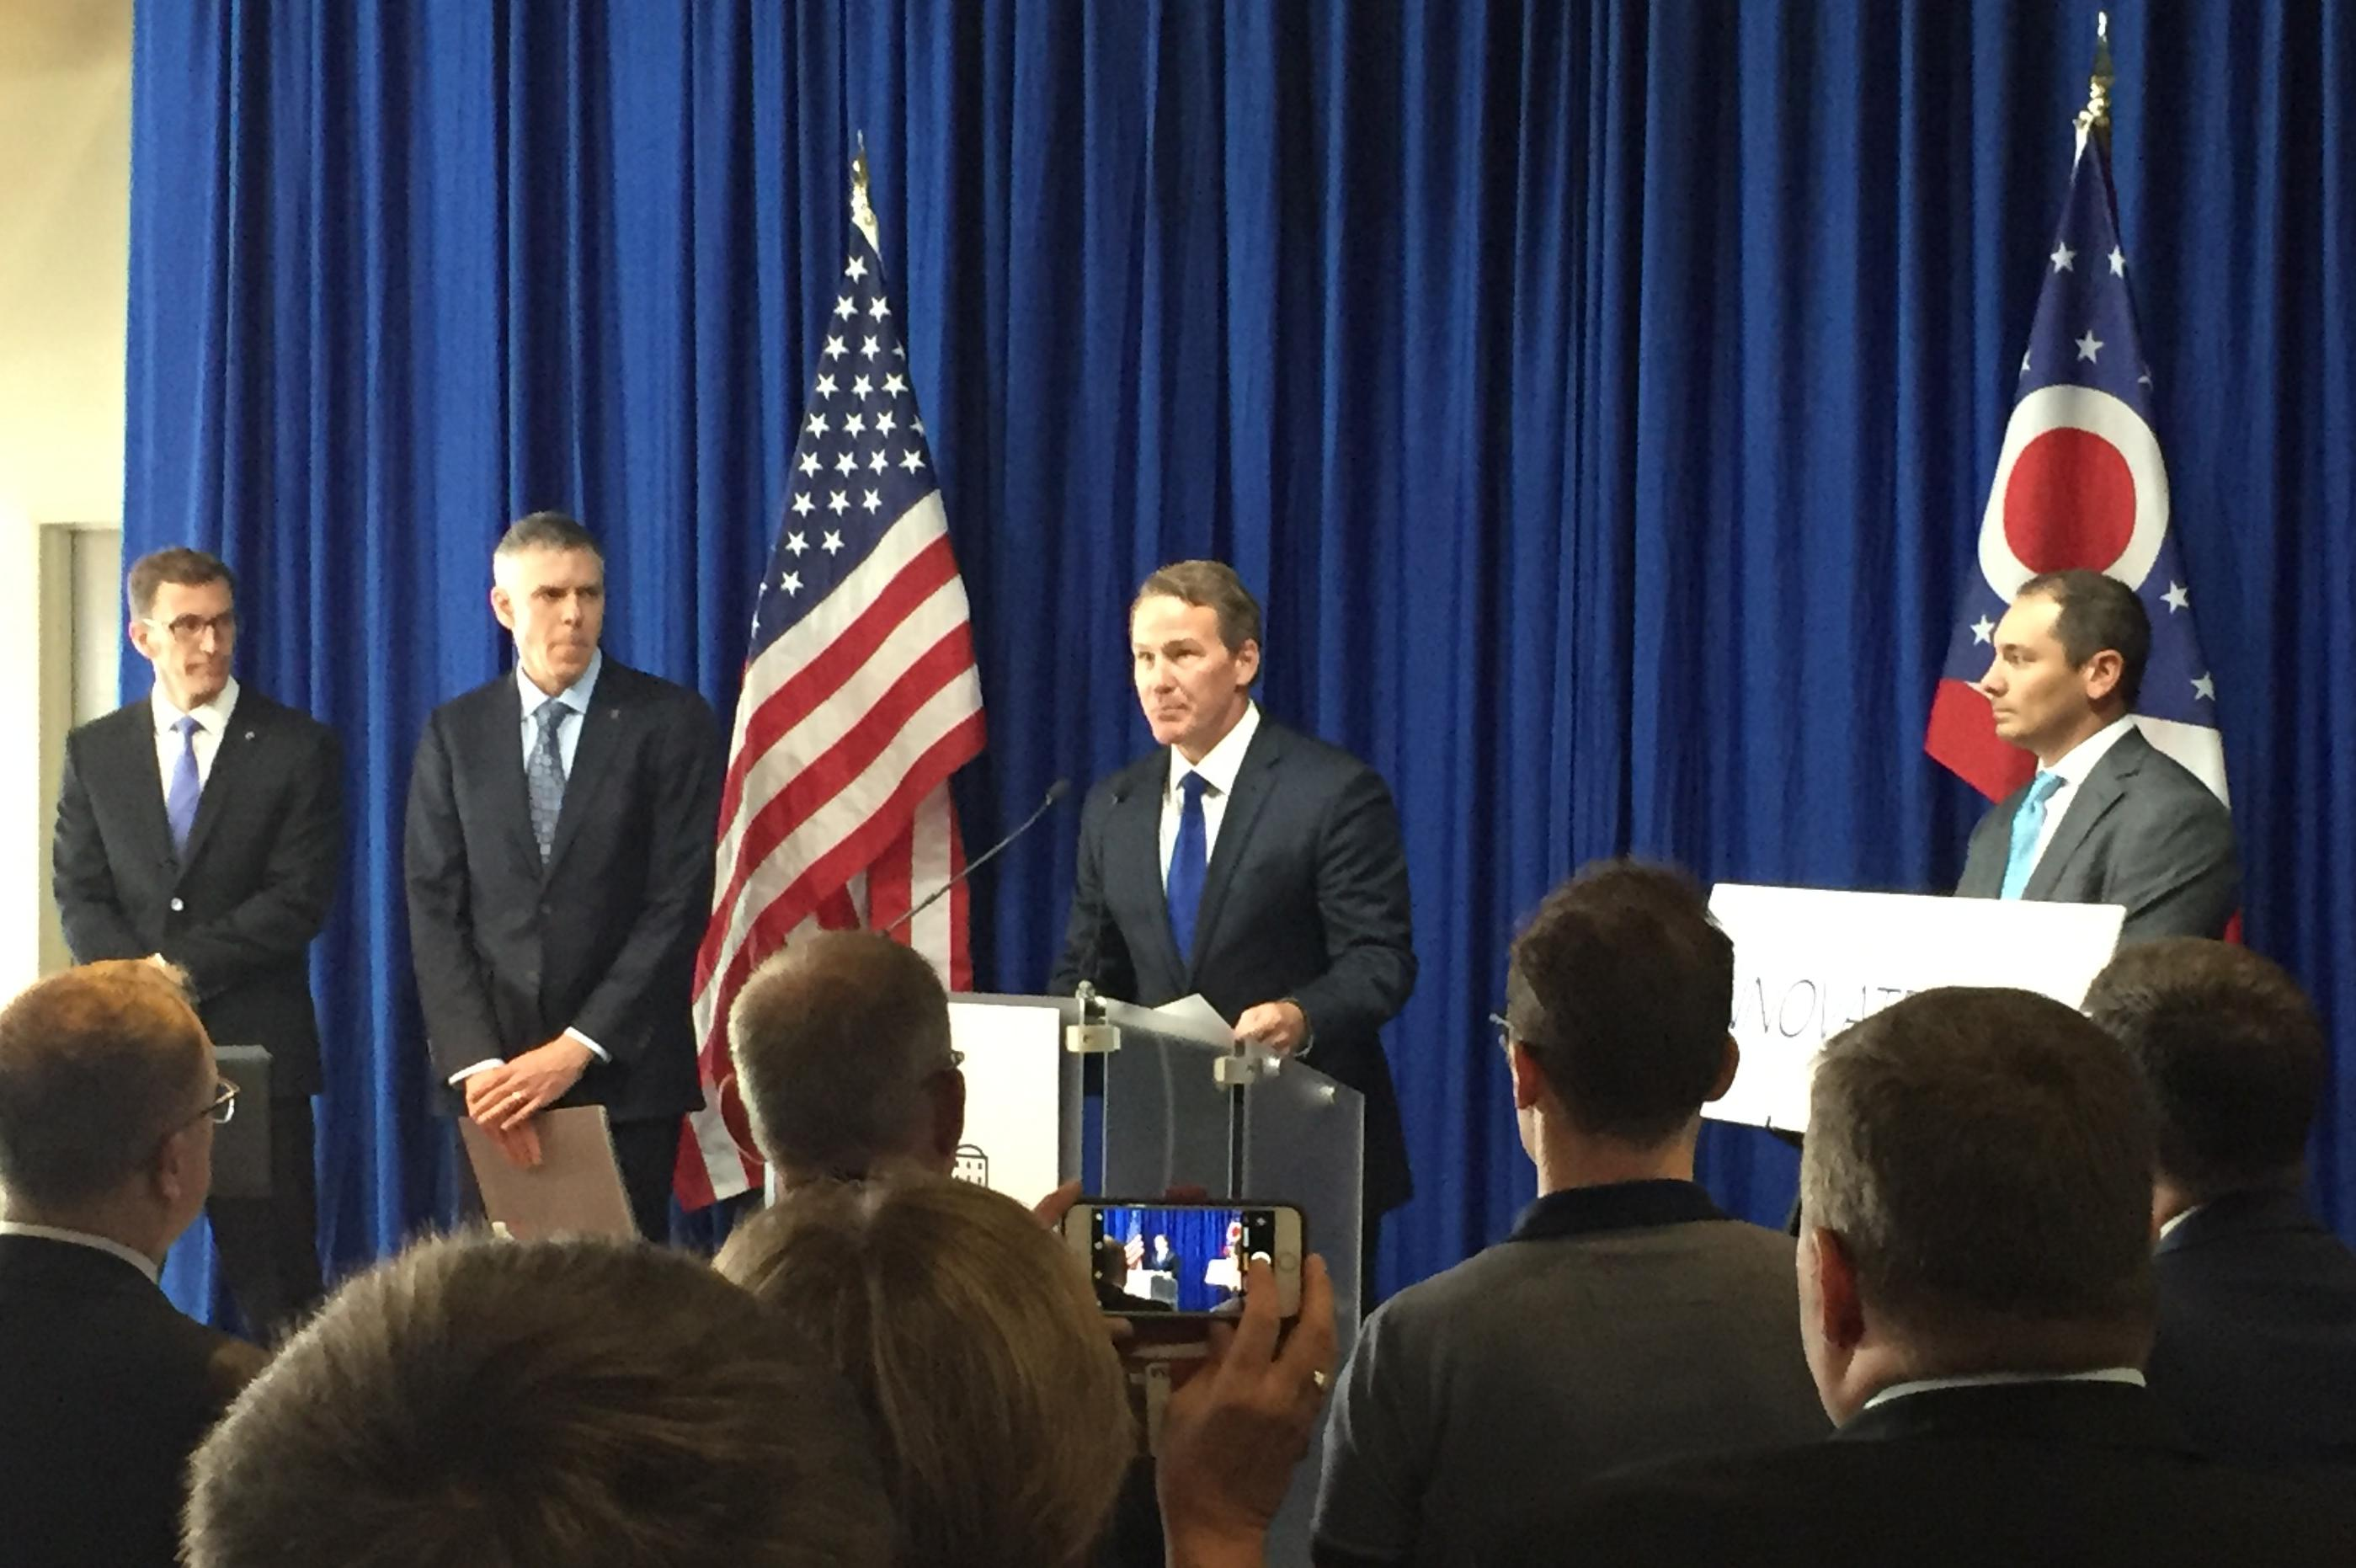 Lt. Gov. Jon Husted is flanked by Ohio's State's associate vice president of technology commercialization Kevin Taylor and others as he announces the Ohio IP Promise.